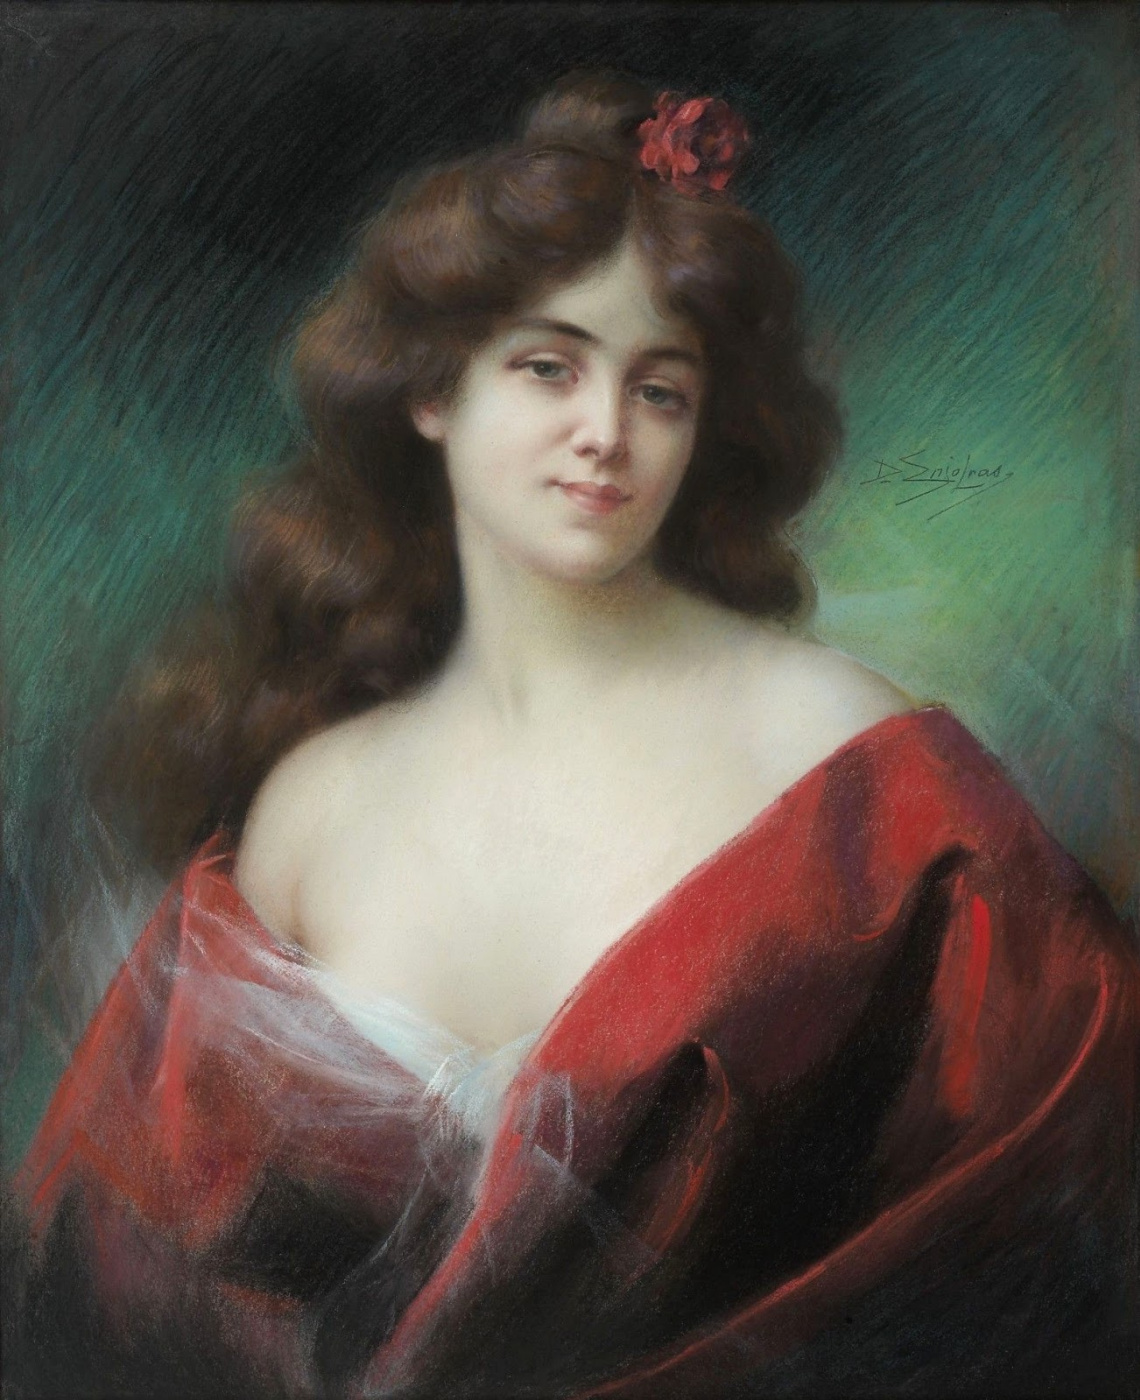 Dolphin Angolra. Portrait of a woman in a red dress.